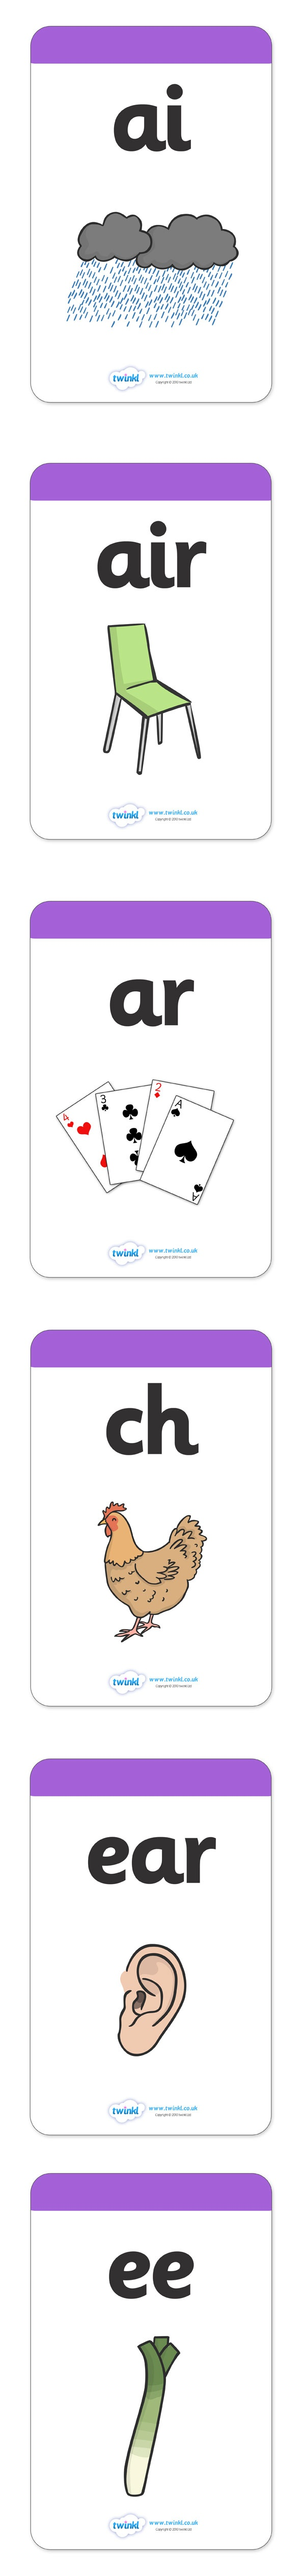 Large Phase 3 Mnemonic Word / Image Cards  - Pop over to our site at www.twinkl.co.uk and check out our lovely Letters and Sounds primary teaching resources! letters and sounds, phonics, phase 3, sound cards, mneumonics #literacy_resources #letters_and_sounds